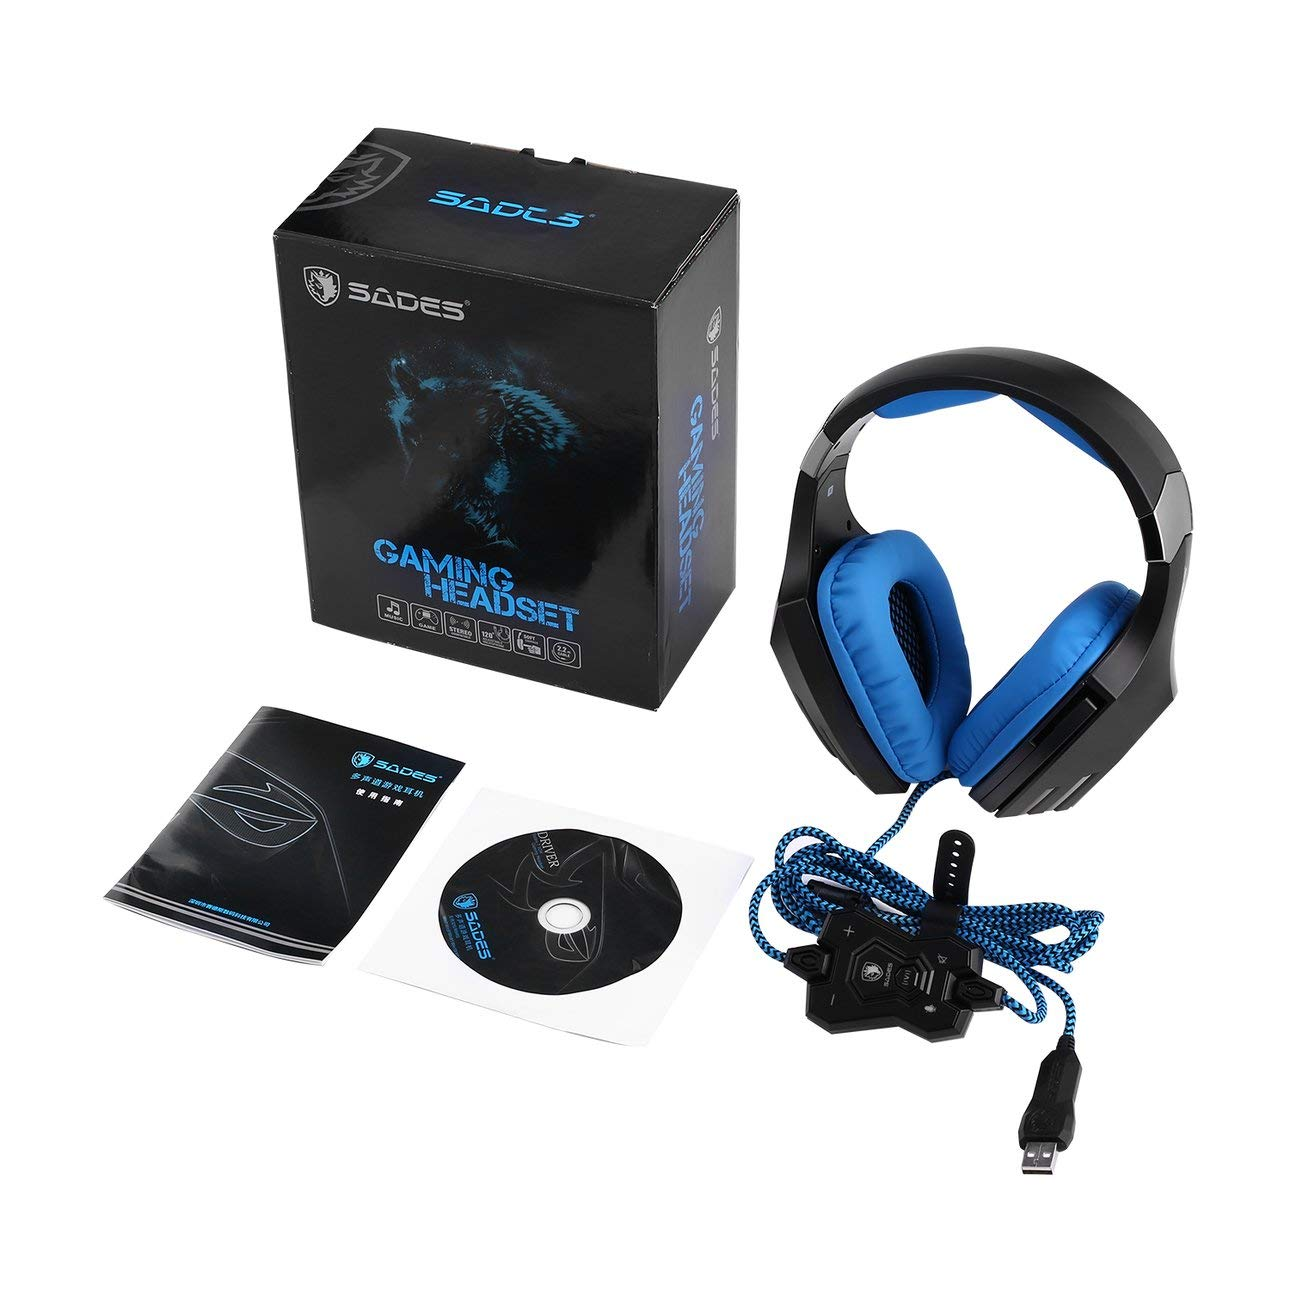 USB Gaming Headset Over Ear Headband Stereo Heaphones with Microphone Noise Isolating Volume Control LED Light